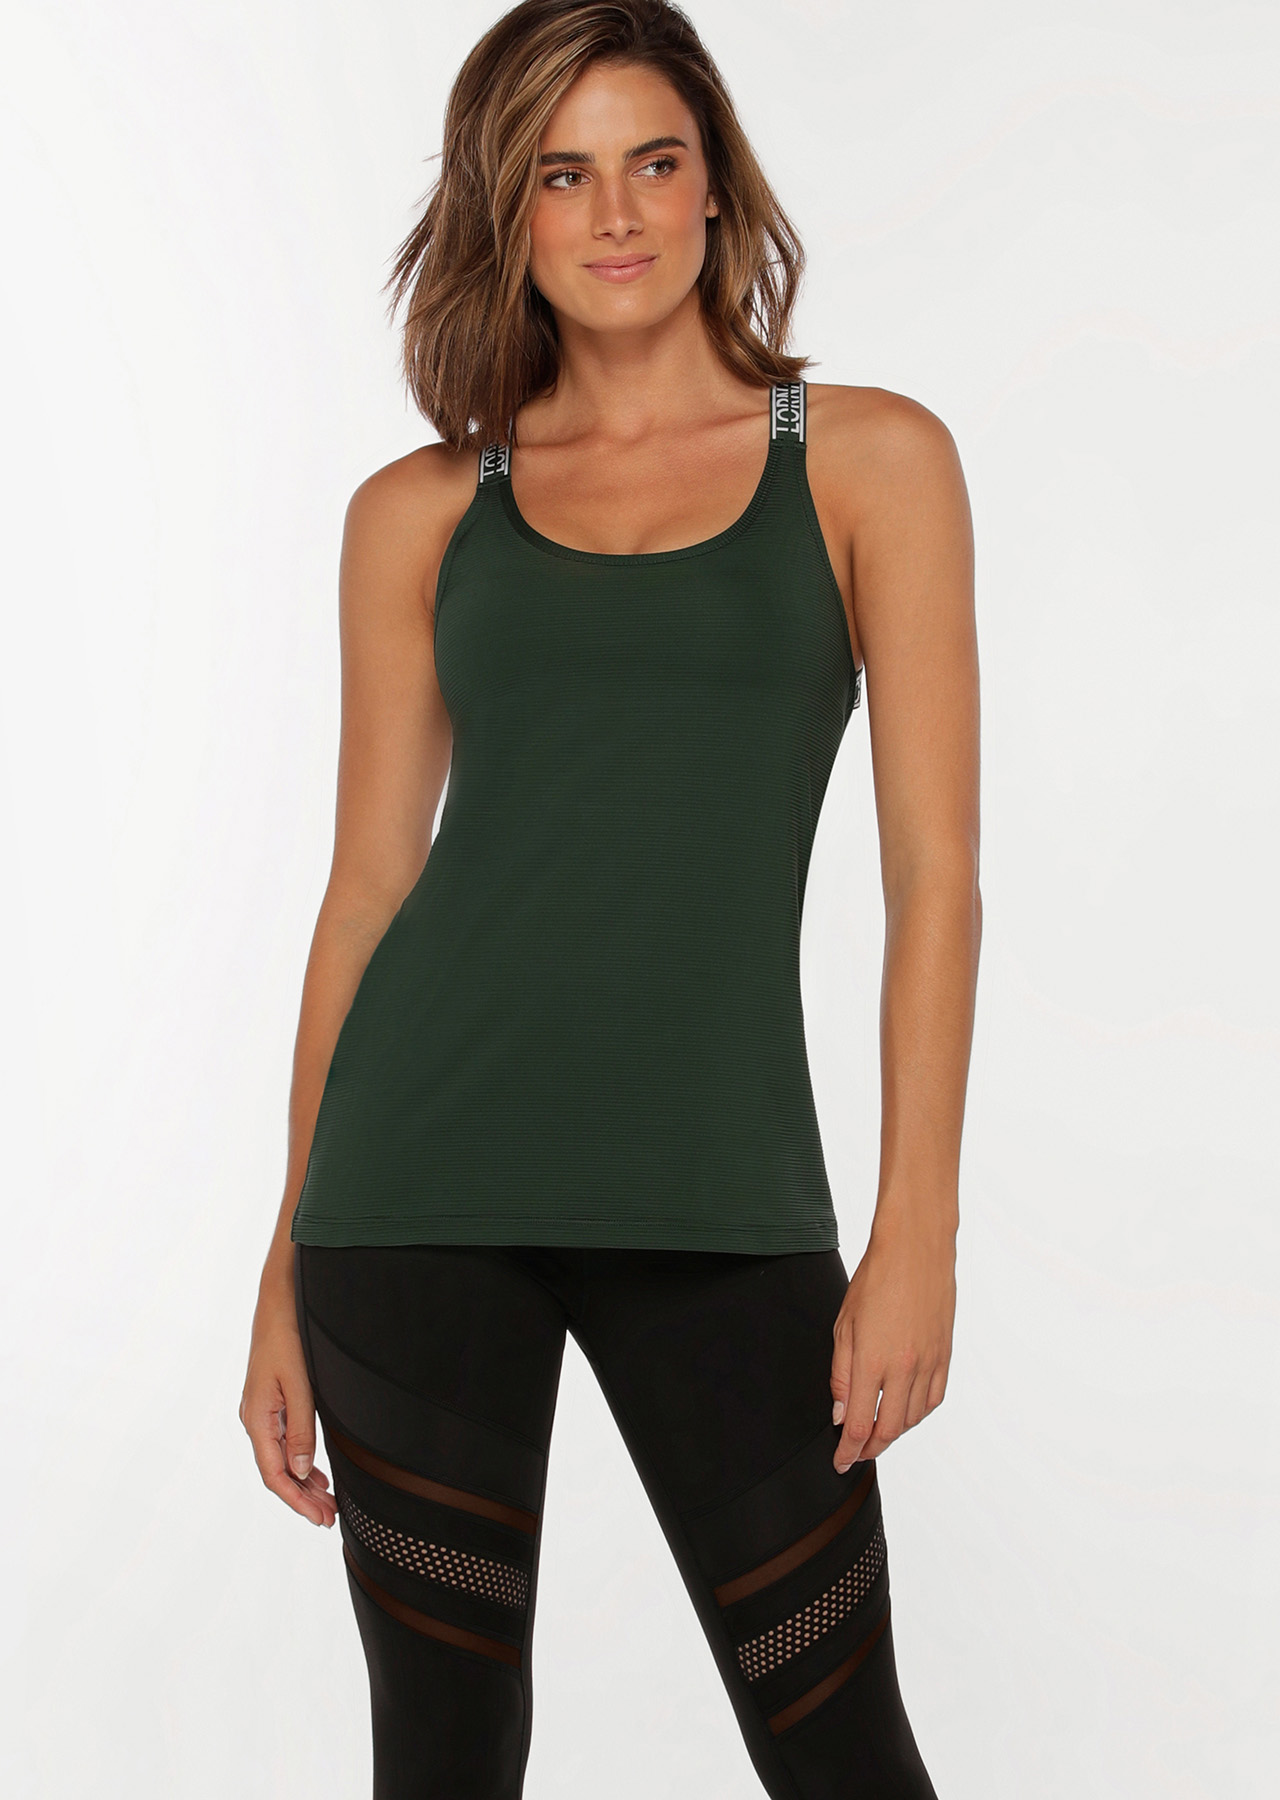 iconic strappy excel tank green 042052 dgr 1 - Sports & Fitness